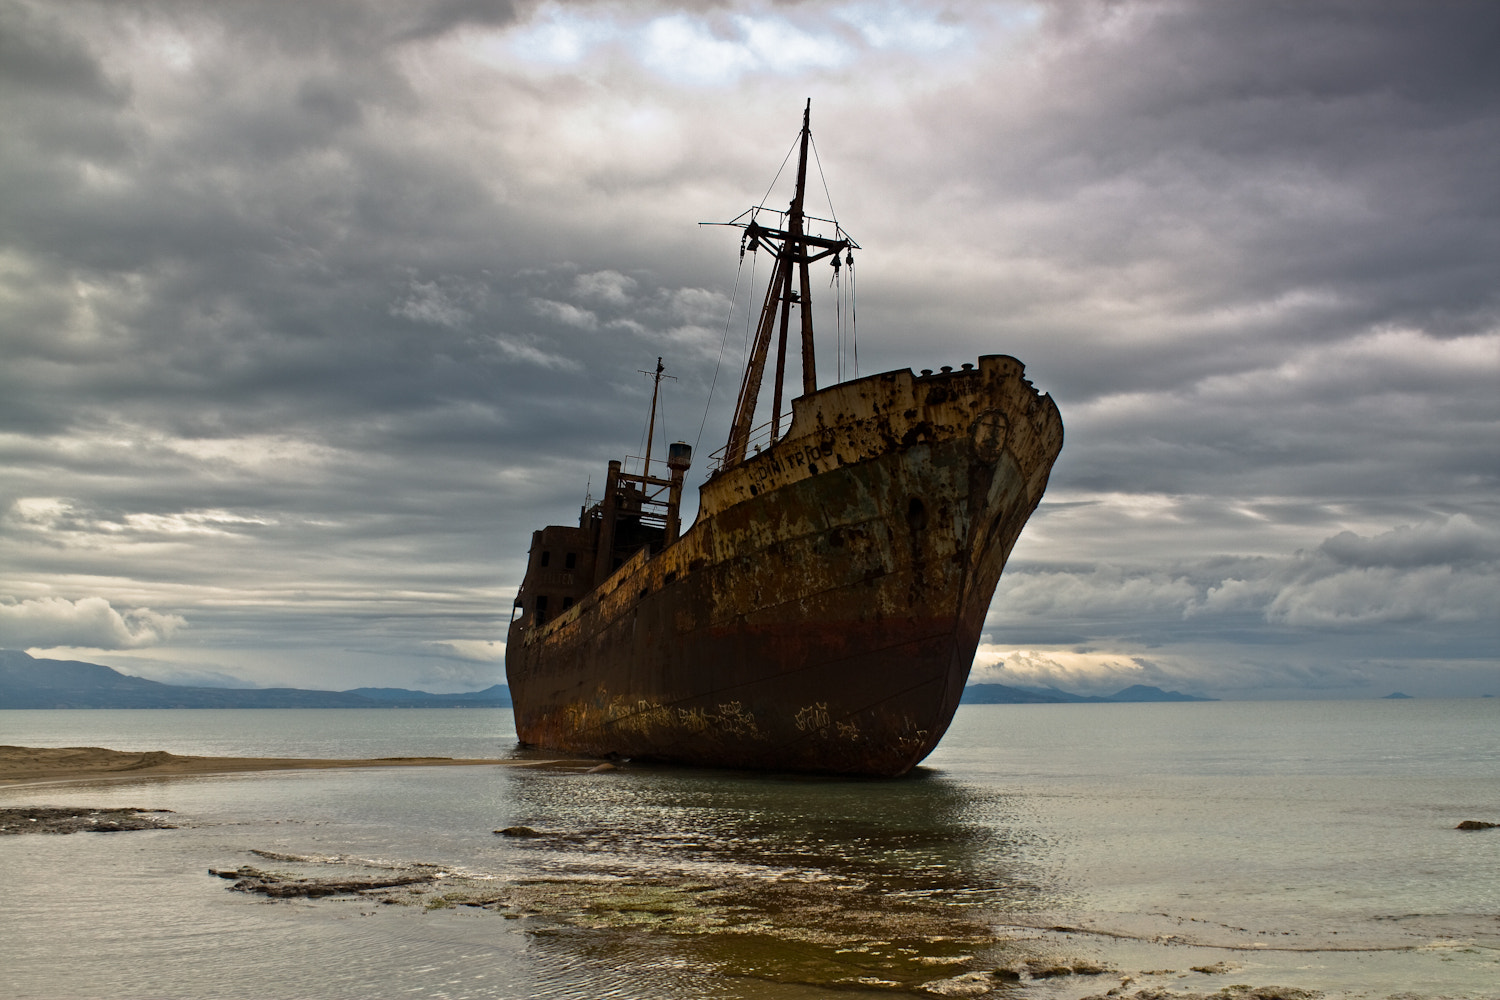 Photograph The wreck by Ilias Katsouras on 500px